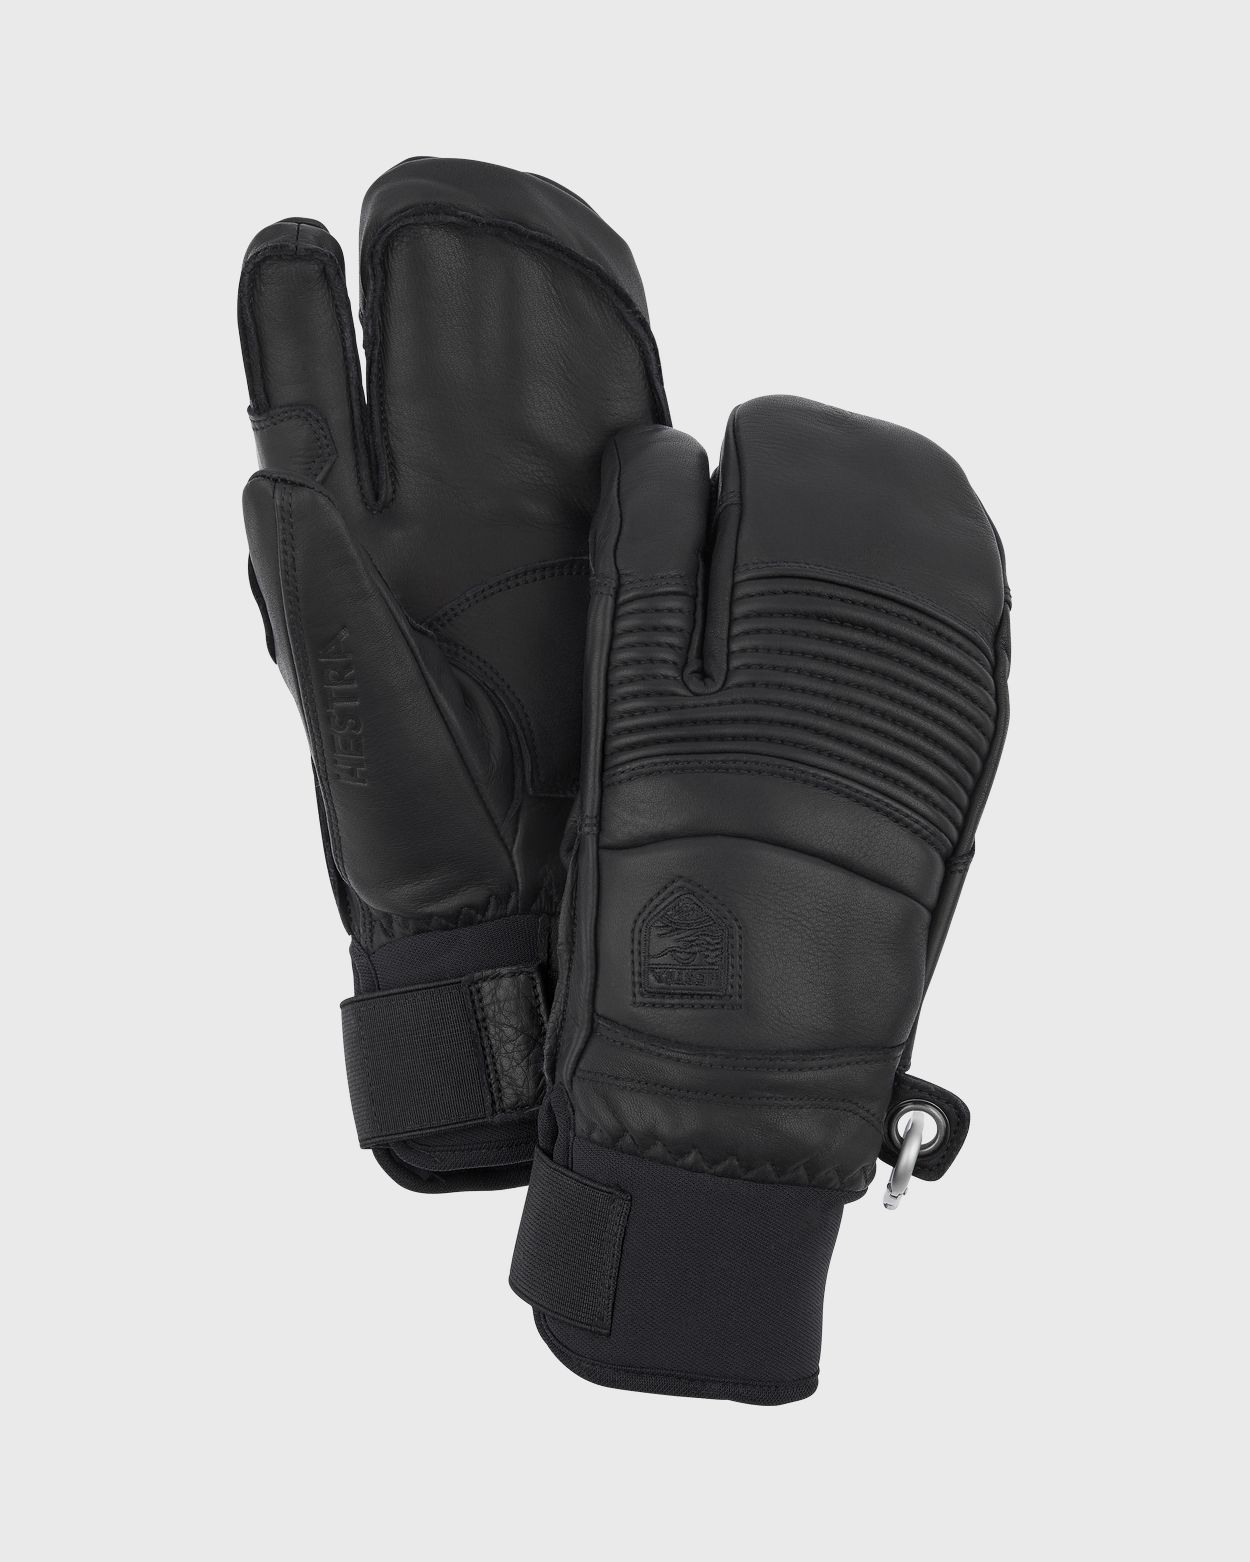 Leather Fall Line - 3 Finger Gloves Hestra Black 7